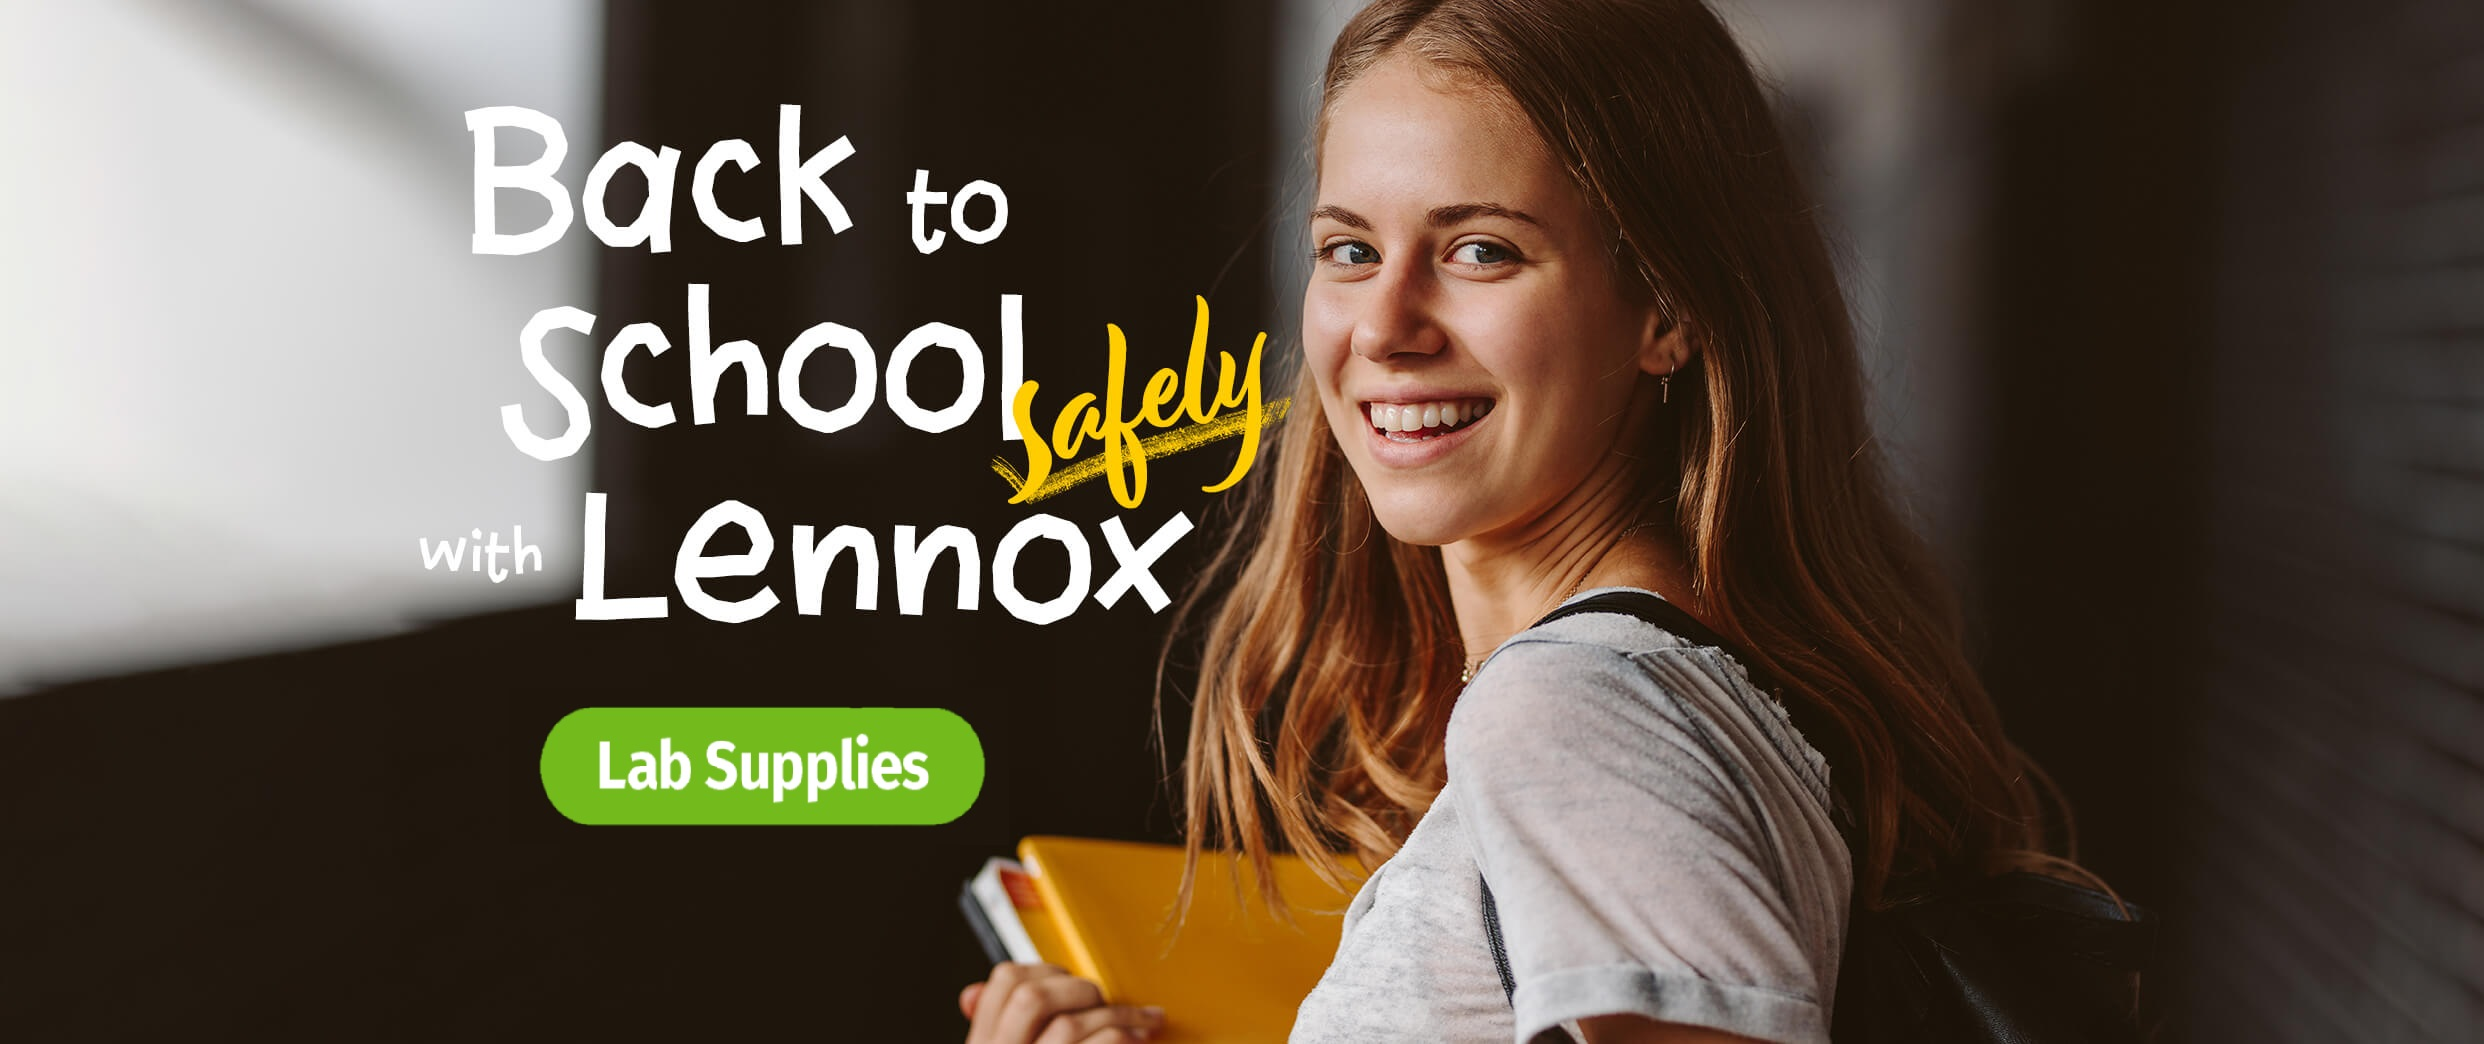 Recent-Banner-1---Back-to-School-with-Lennox---Copy